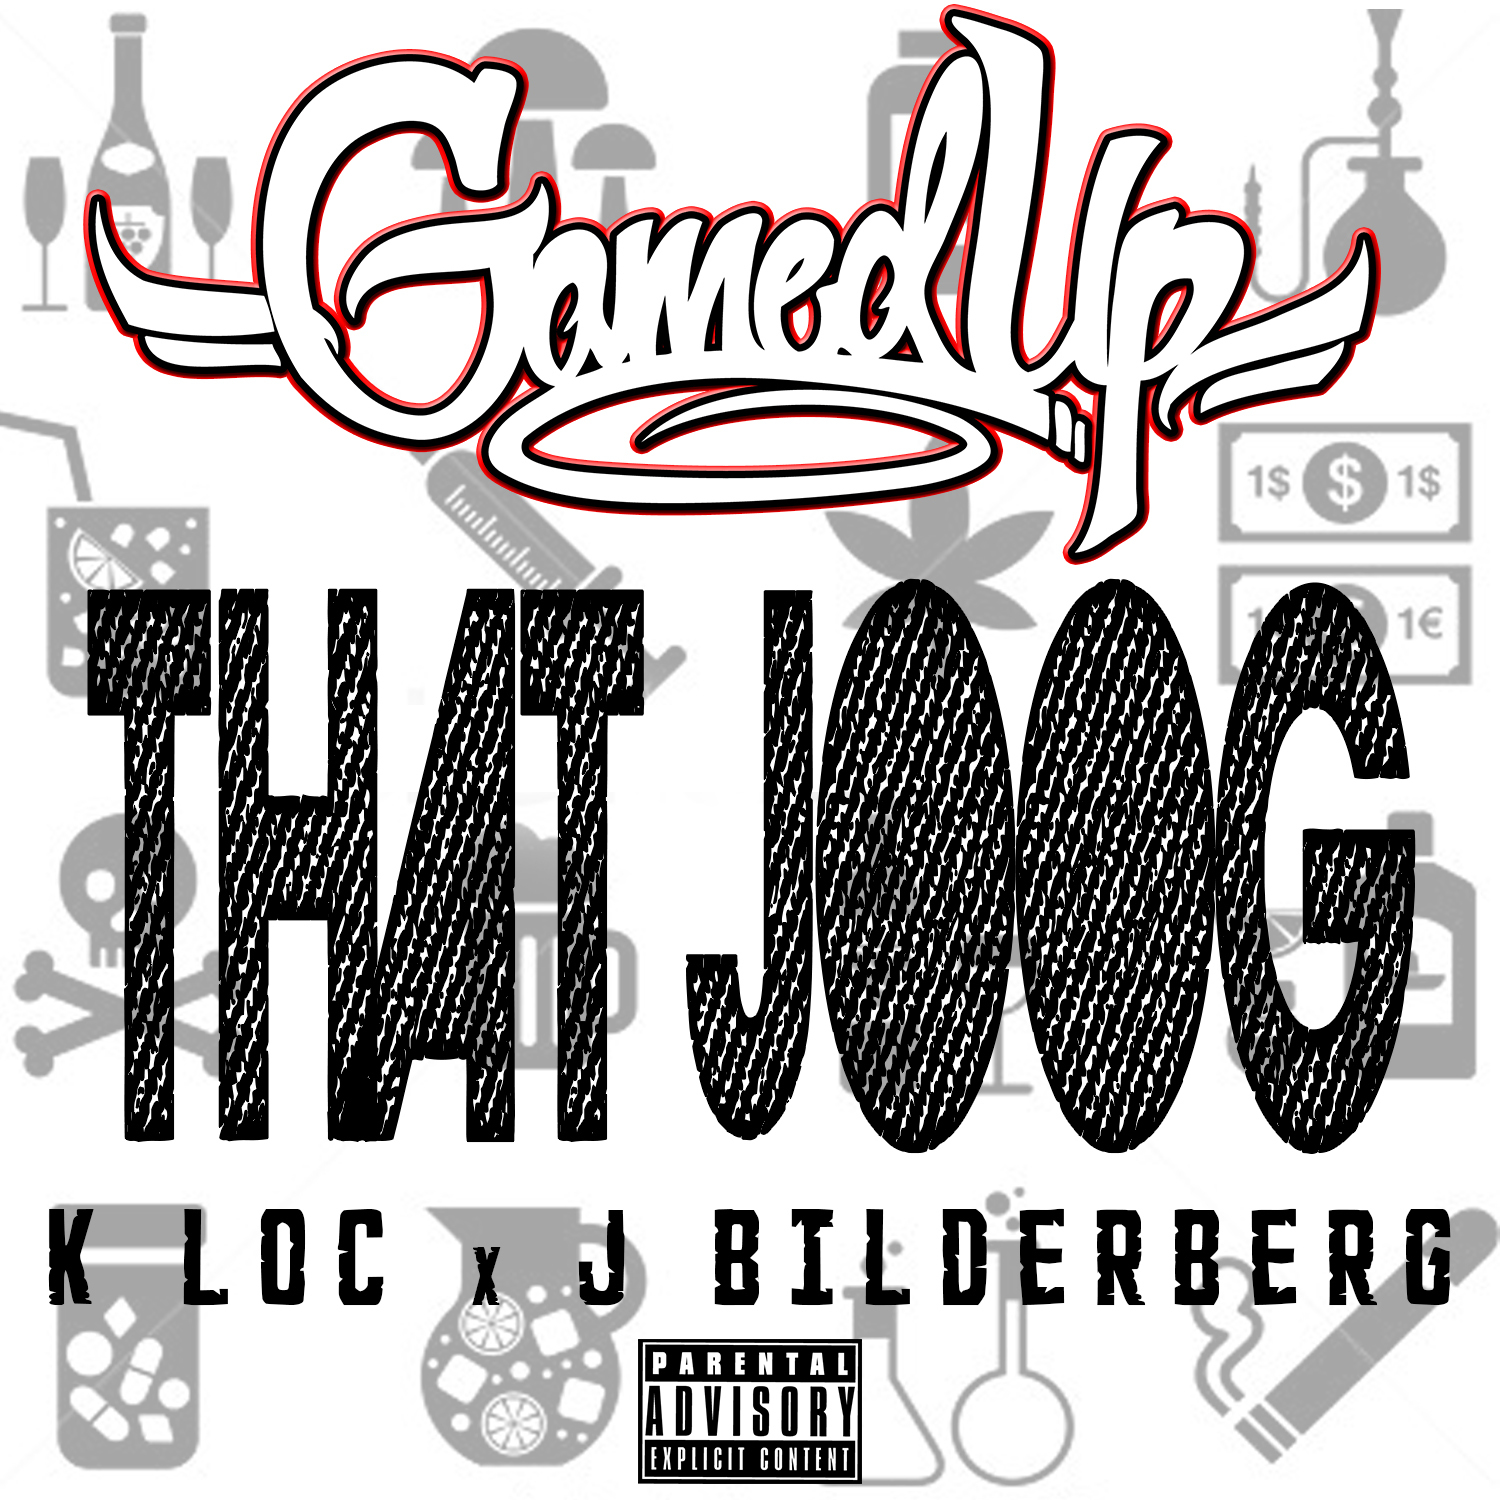 Gamed Up ft. K-Loc of Gorilla Pits & J. Bilderberg - That Joog [Thizzler.com]